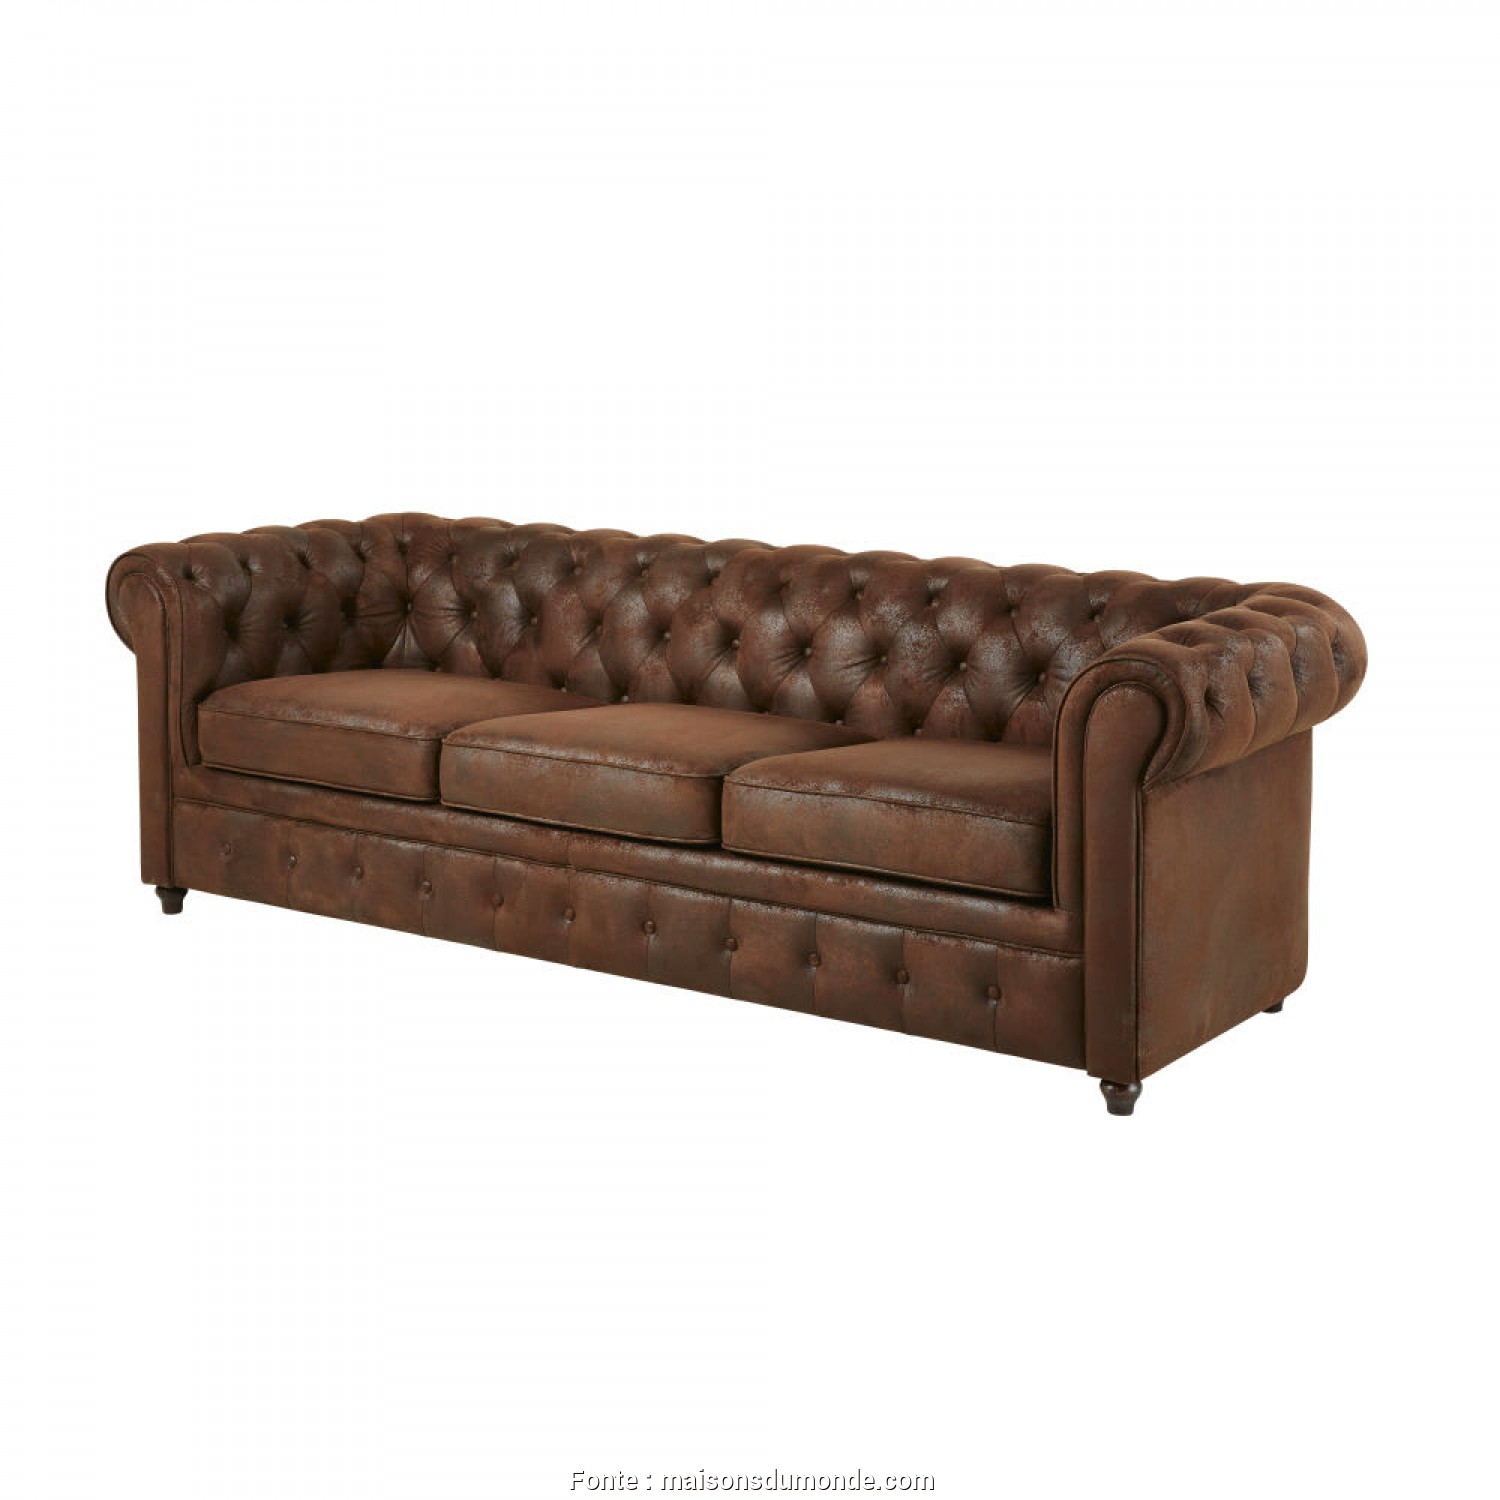 Loveable 5 Divano Letto Chesterfield 3 Posti